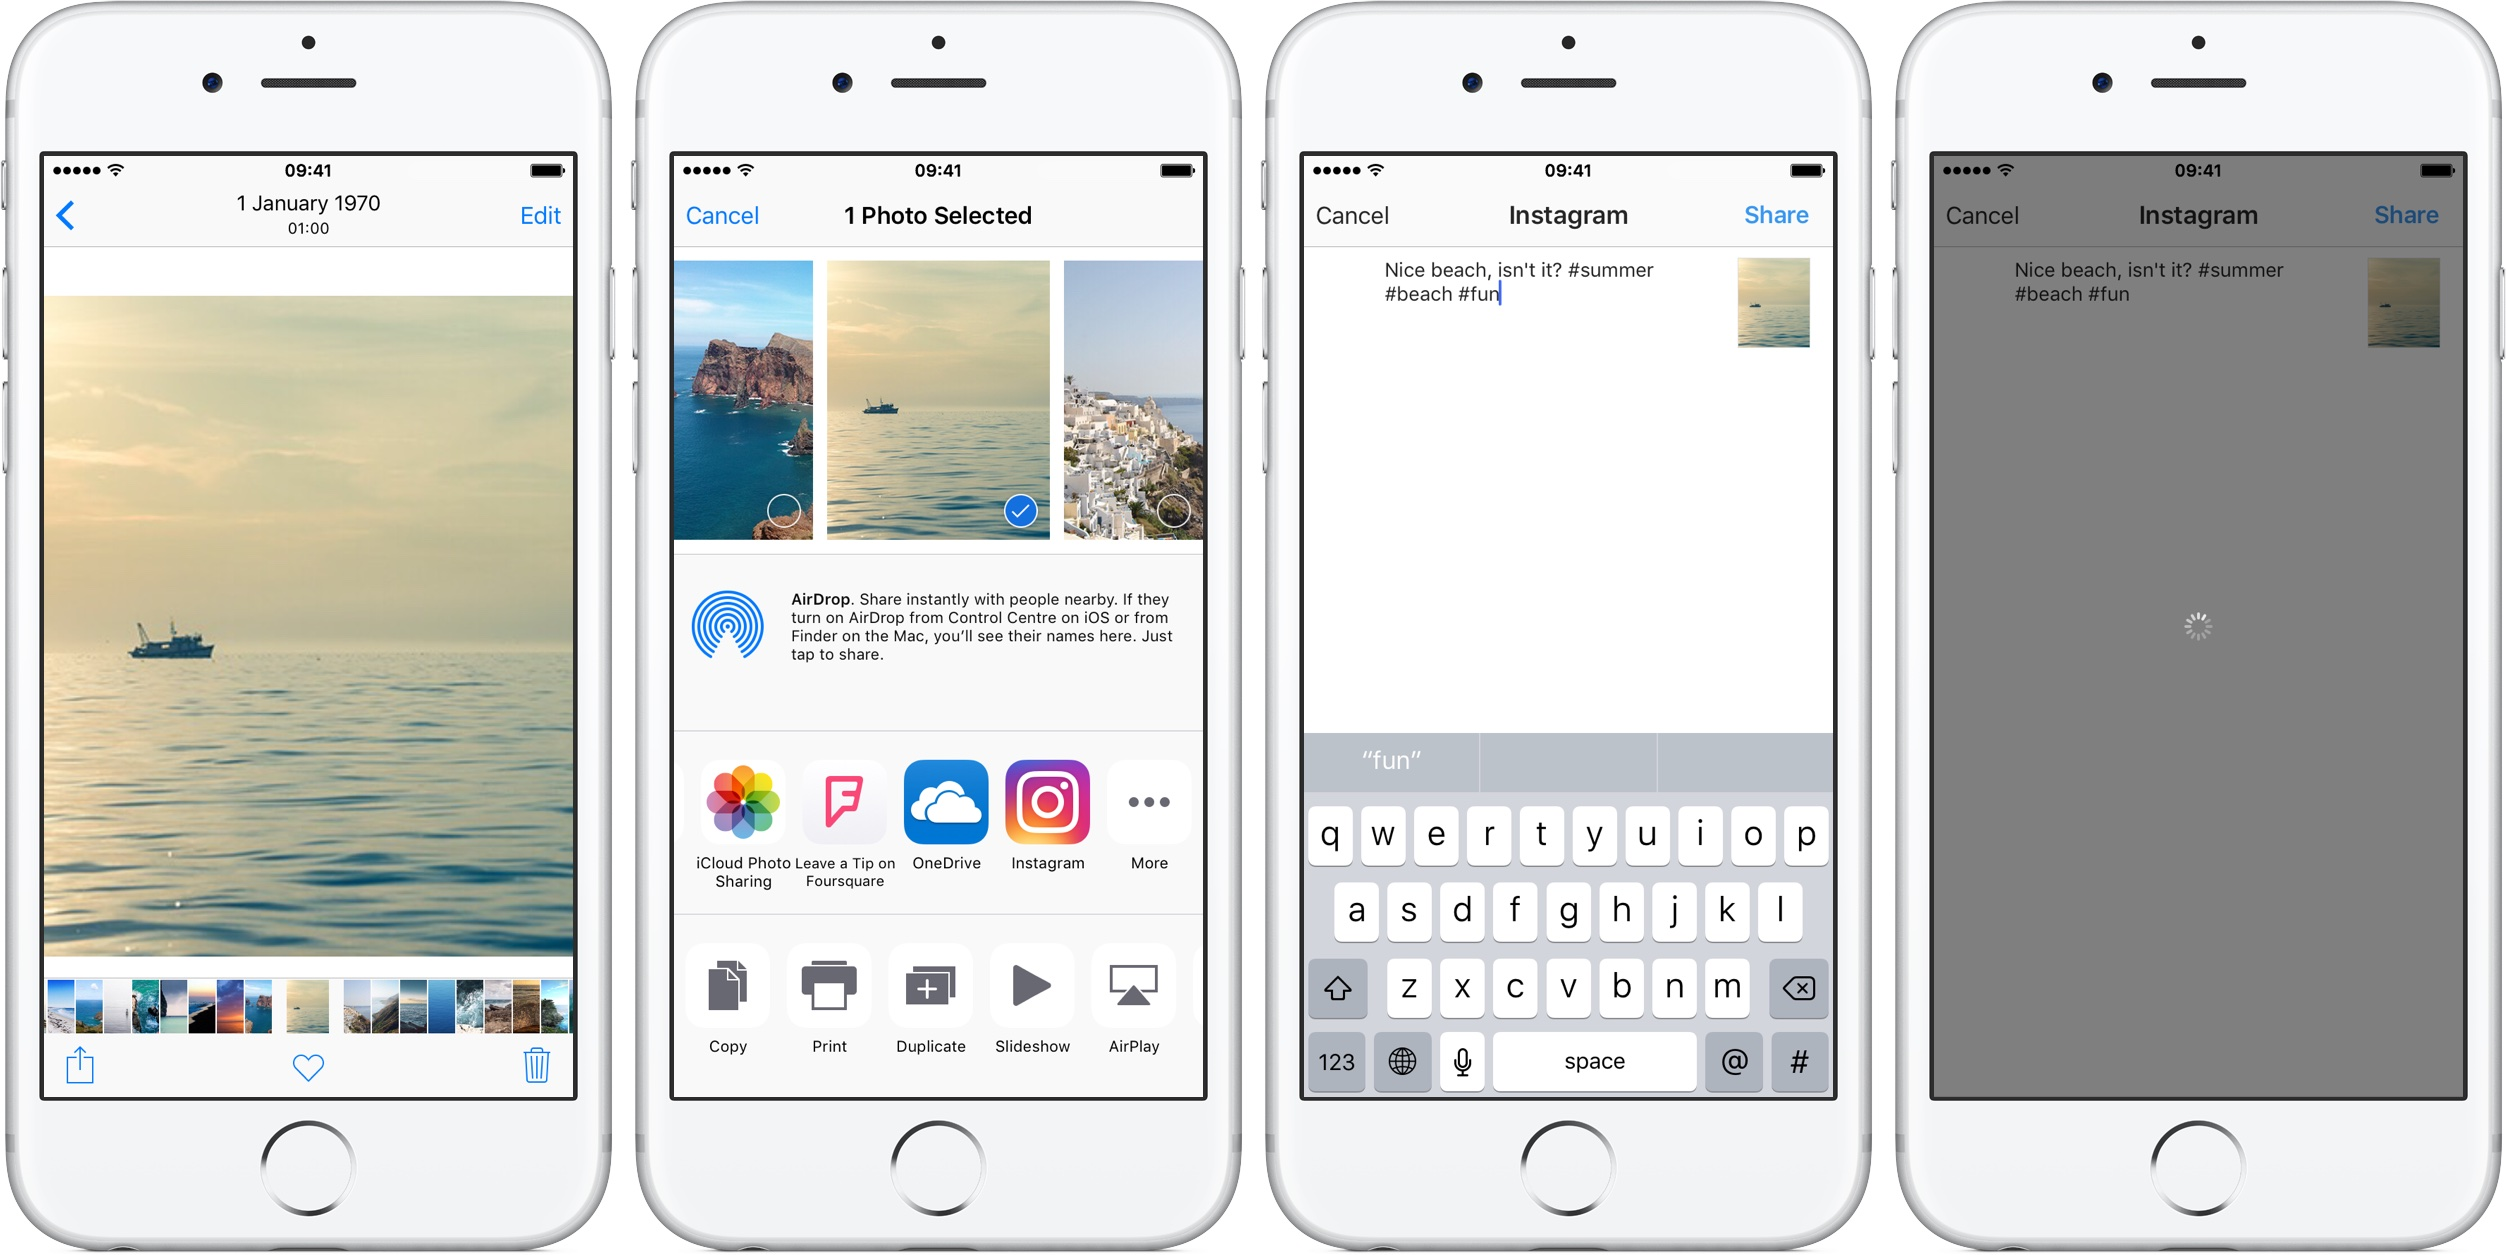 Instagram 8.2 for iOS iPhone screenshot 001